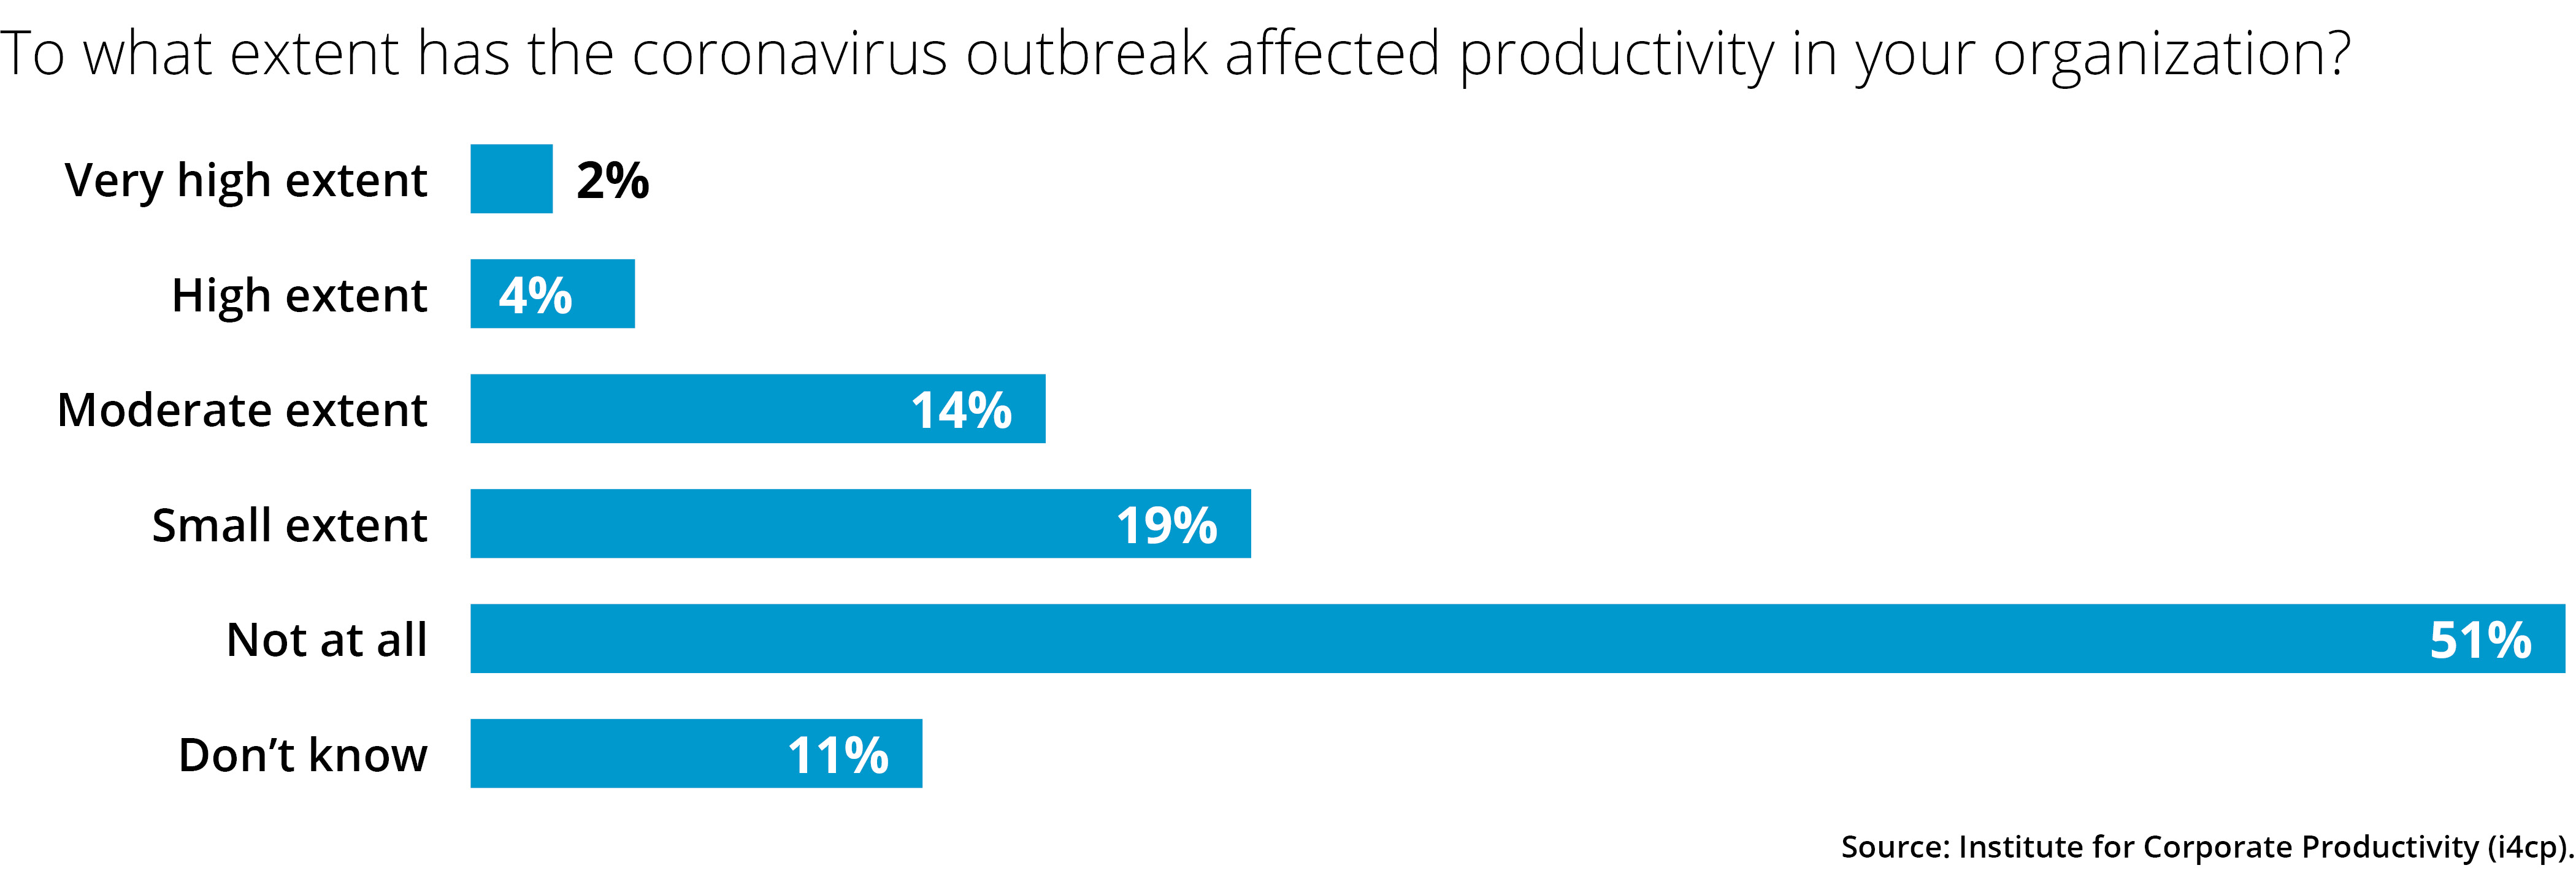 To what extent has the coronavirus outbreak affected productivity in your organization